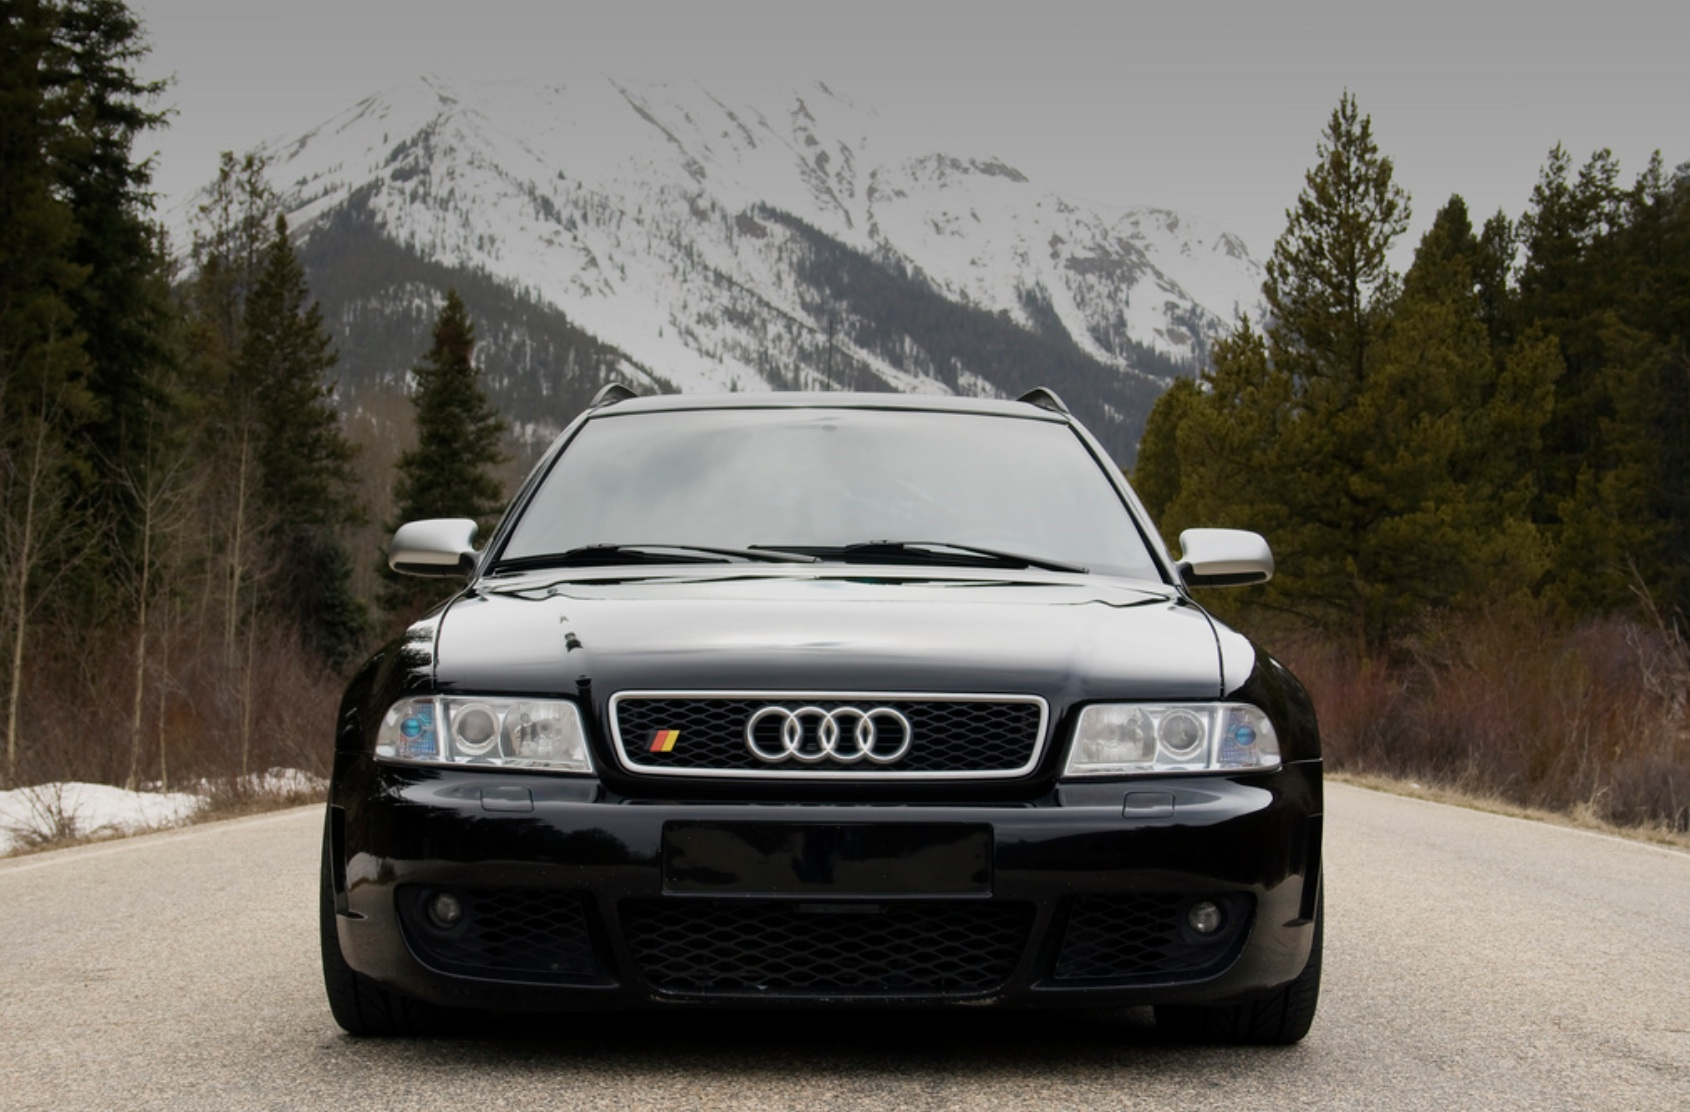 2001 Audi S4 Avant Rs4 Conversion Revisit German